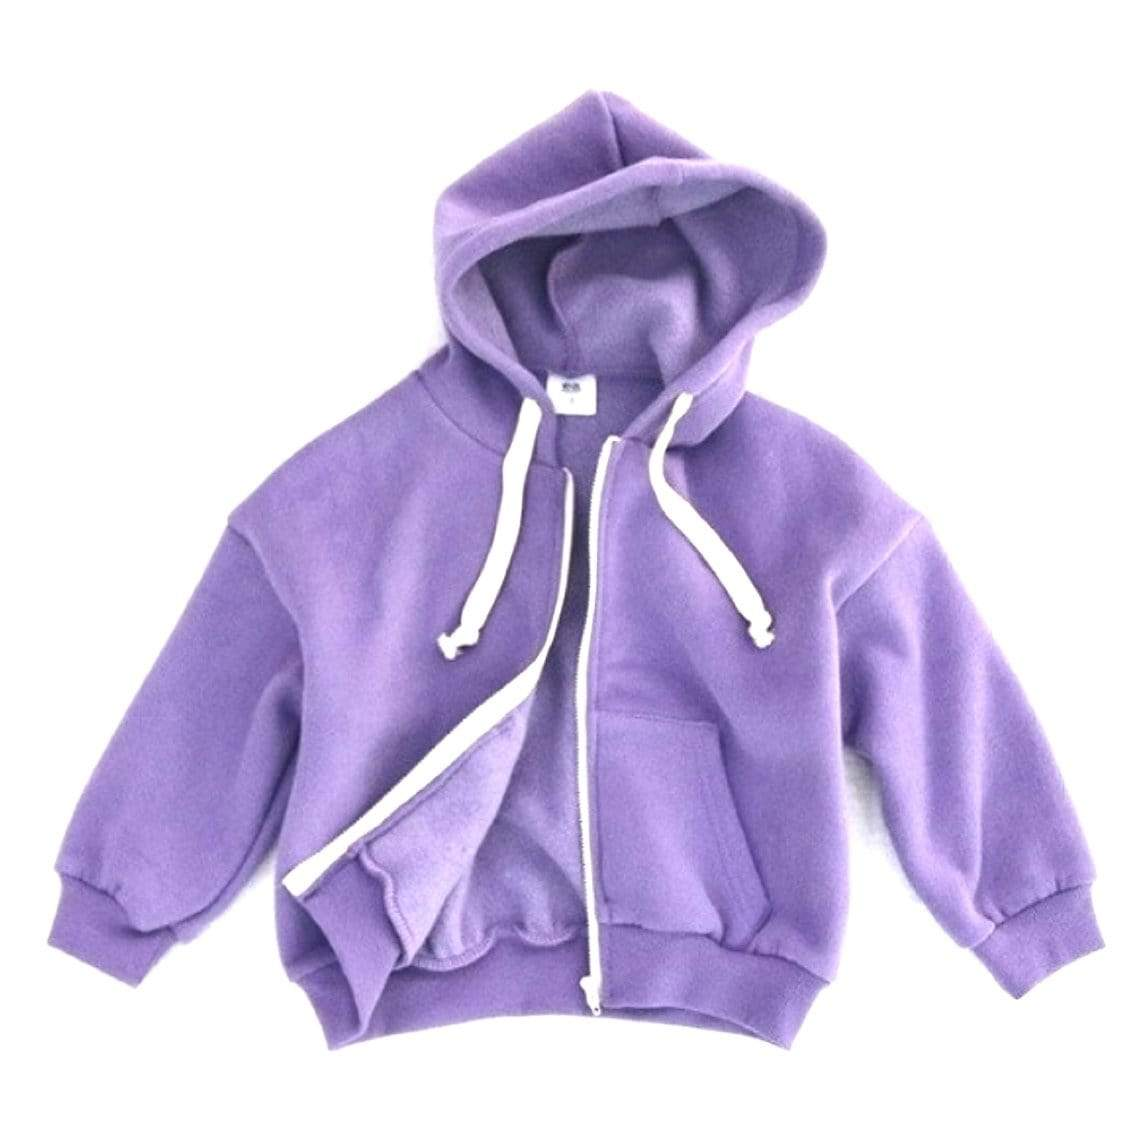 White Sketch Book - Violet Zip Up Hooded Sweatshirt Sweatshirt White Sketch Book